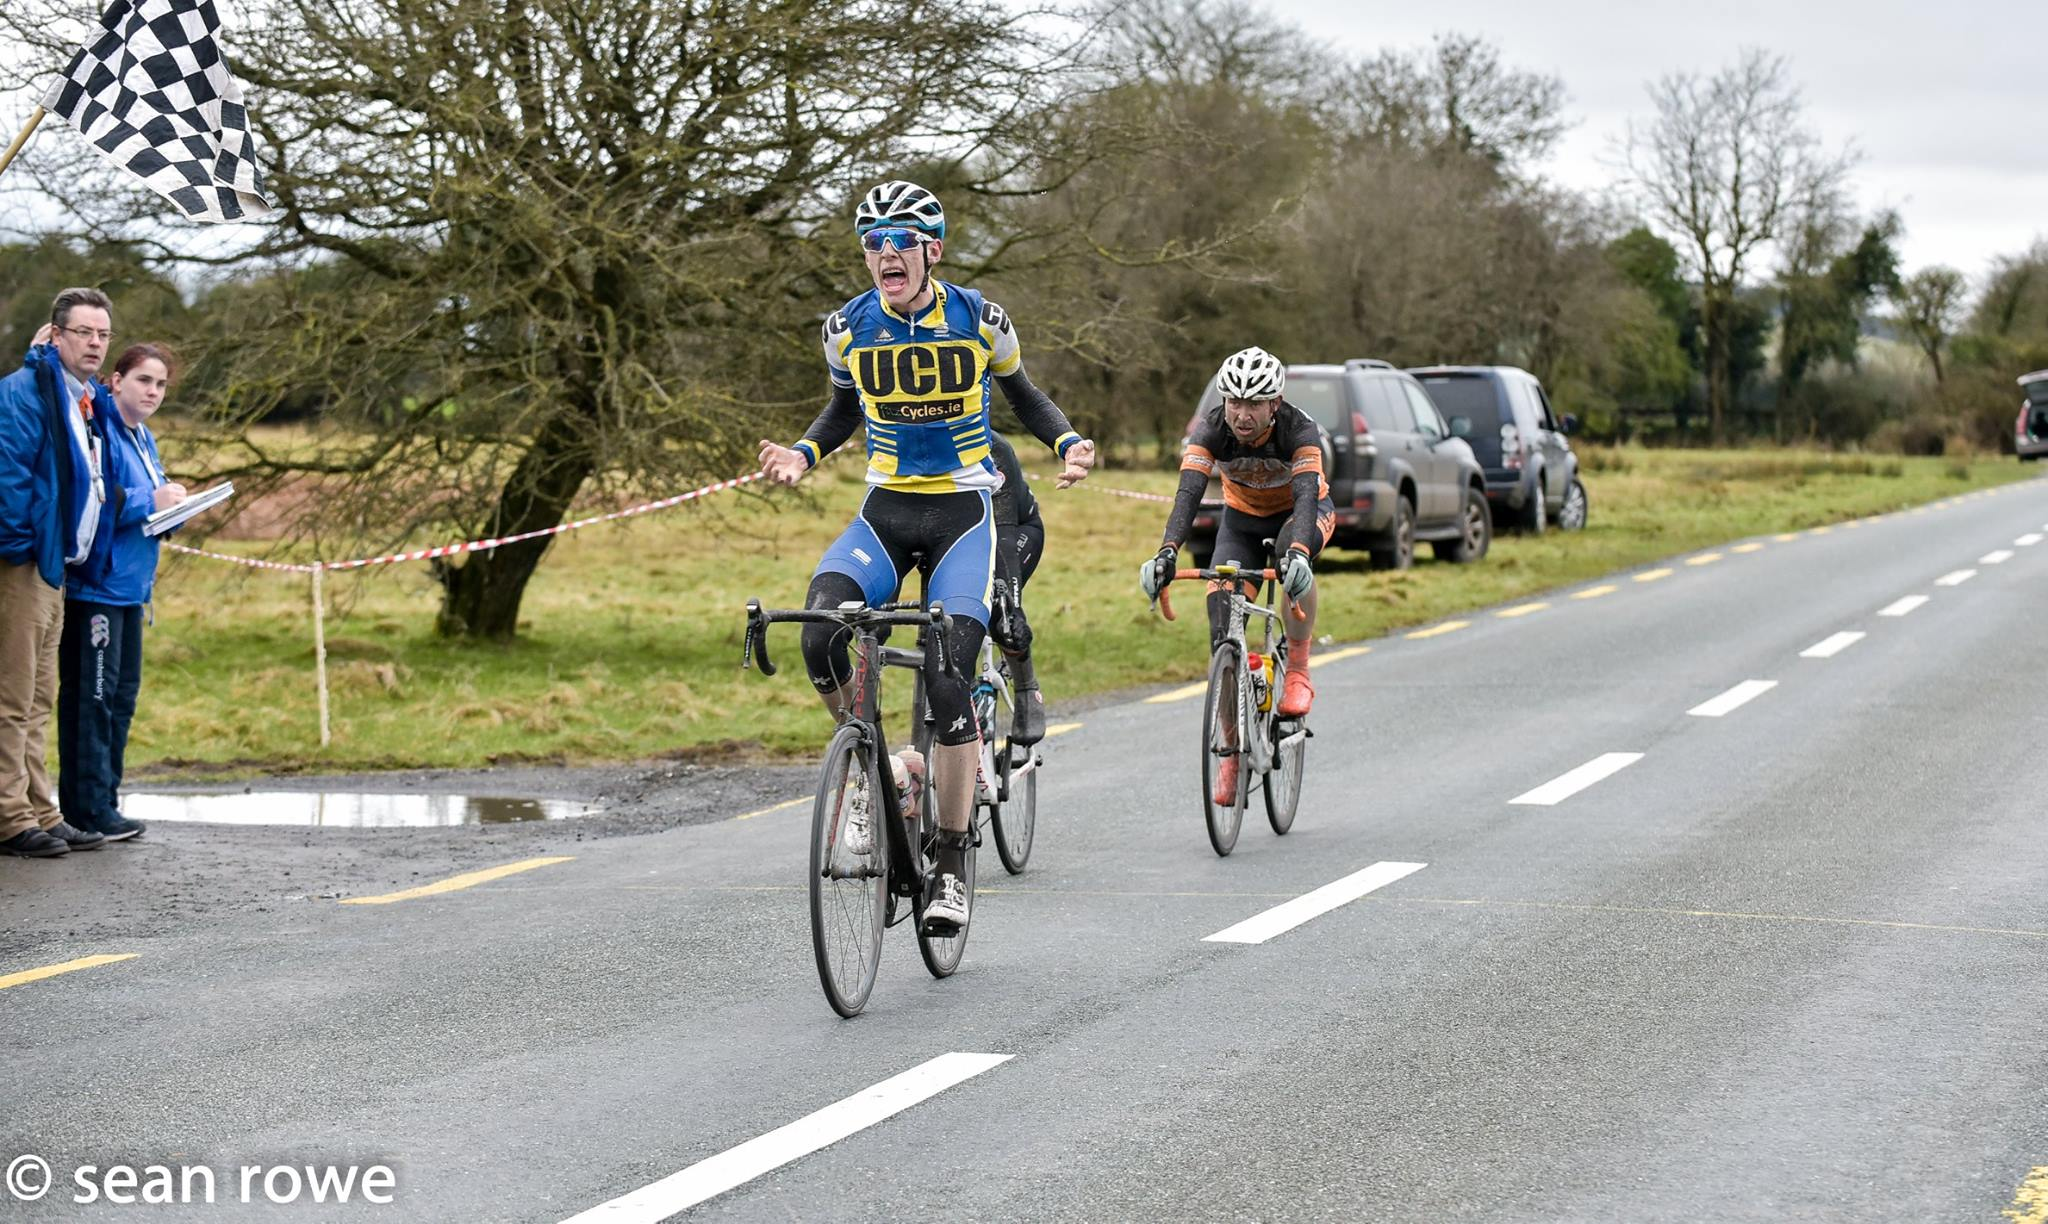 c1b6bca99dd80 Results Newbridge CC Grand Prix; O'Mahony, McKenna win - Sticky Bottle